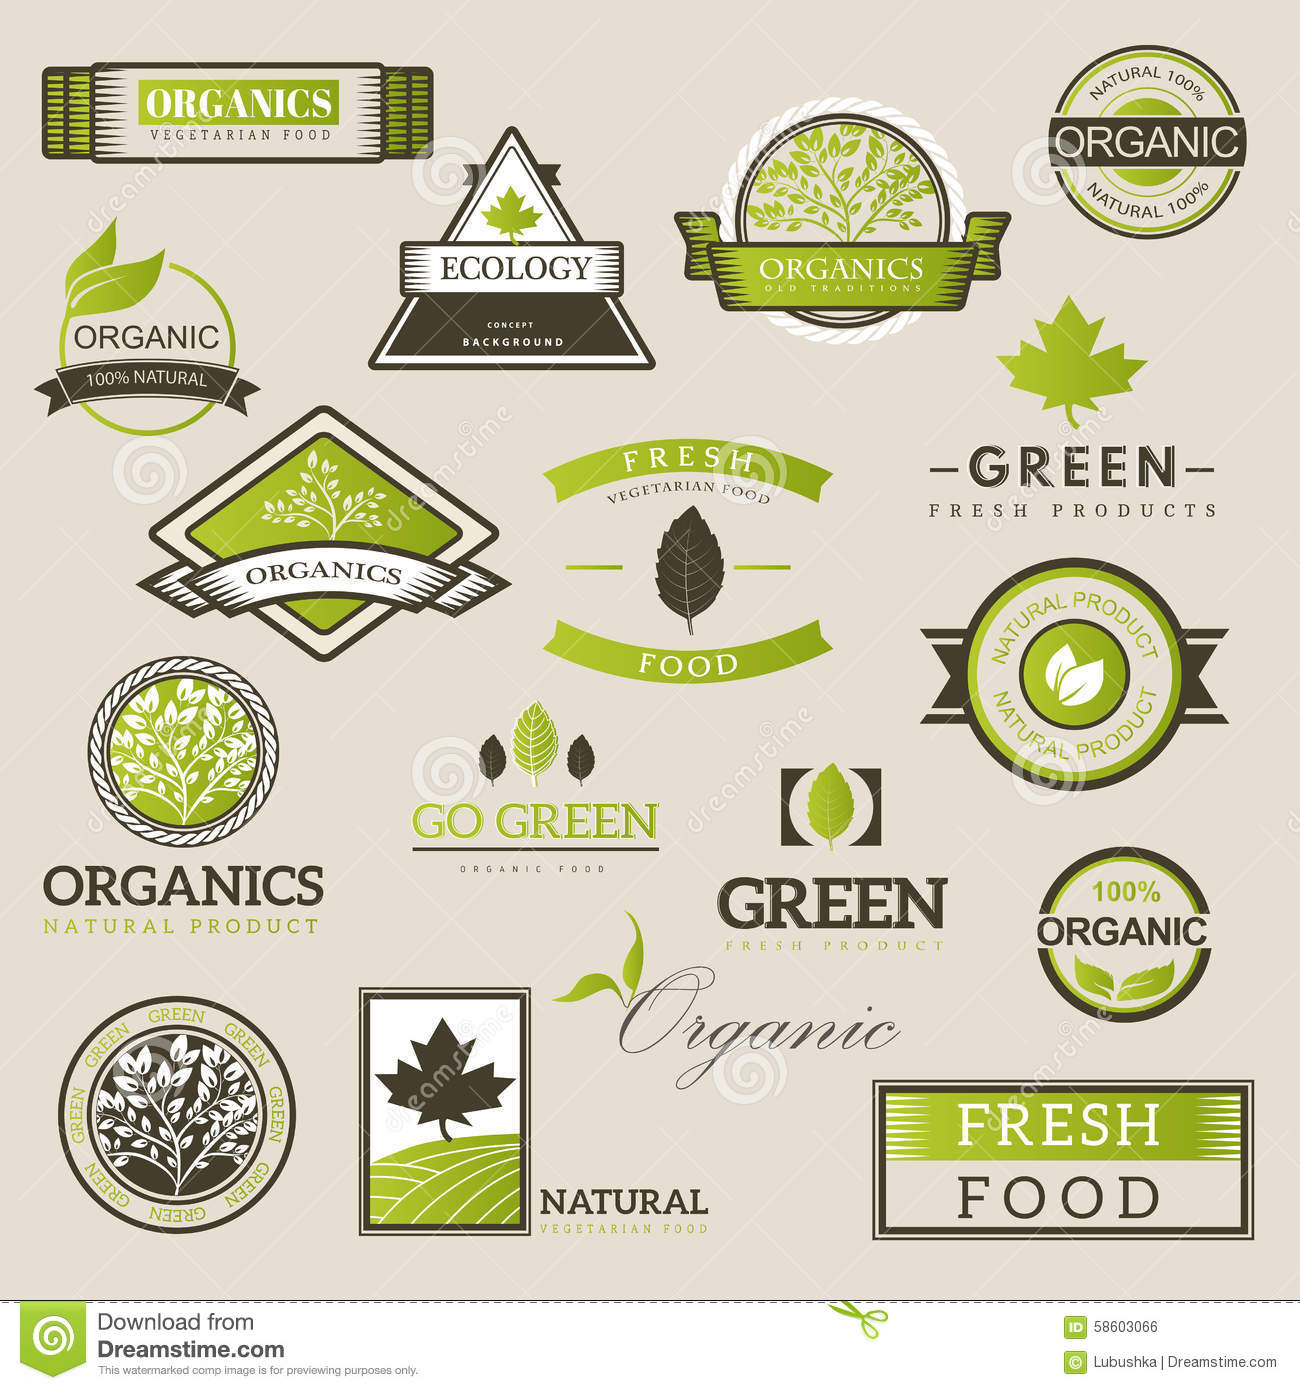 Organic Food Stores Online